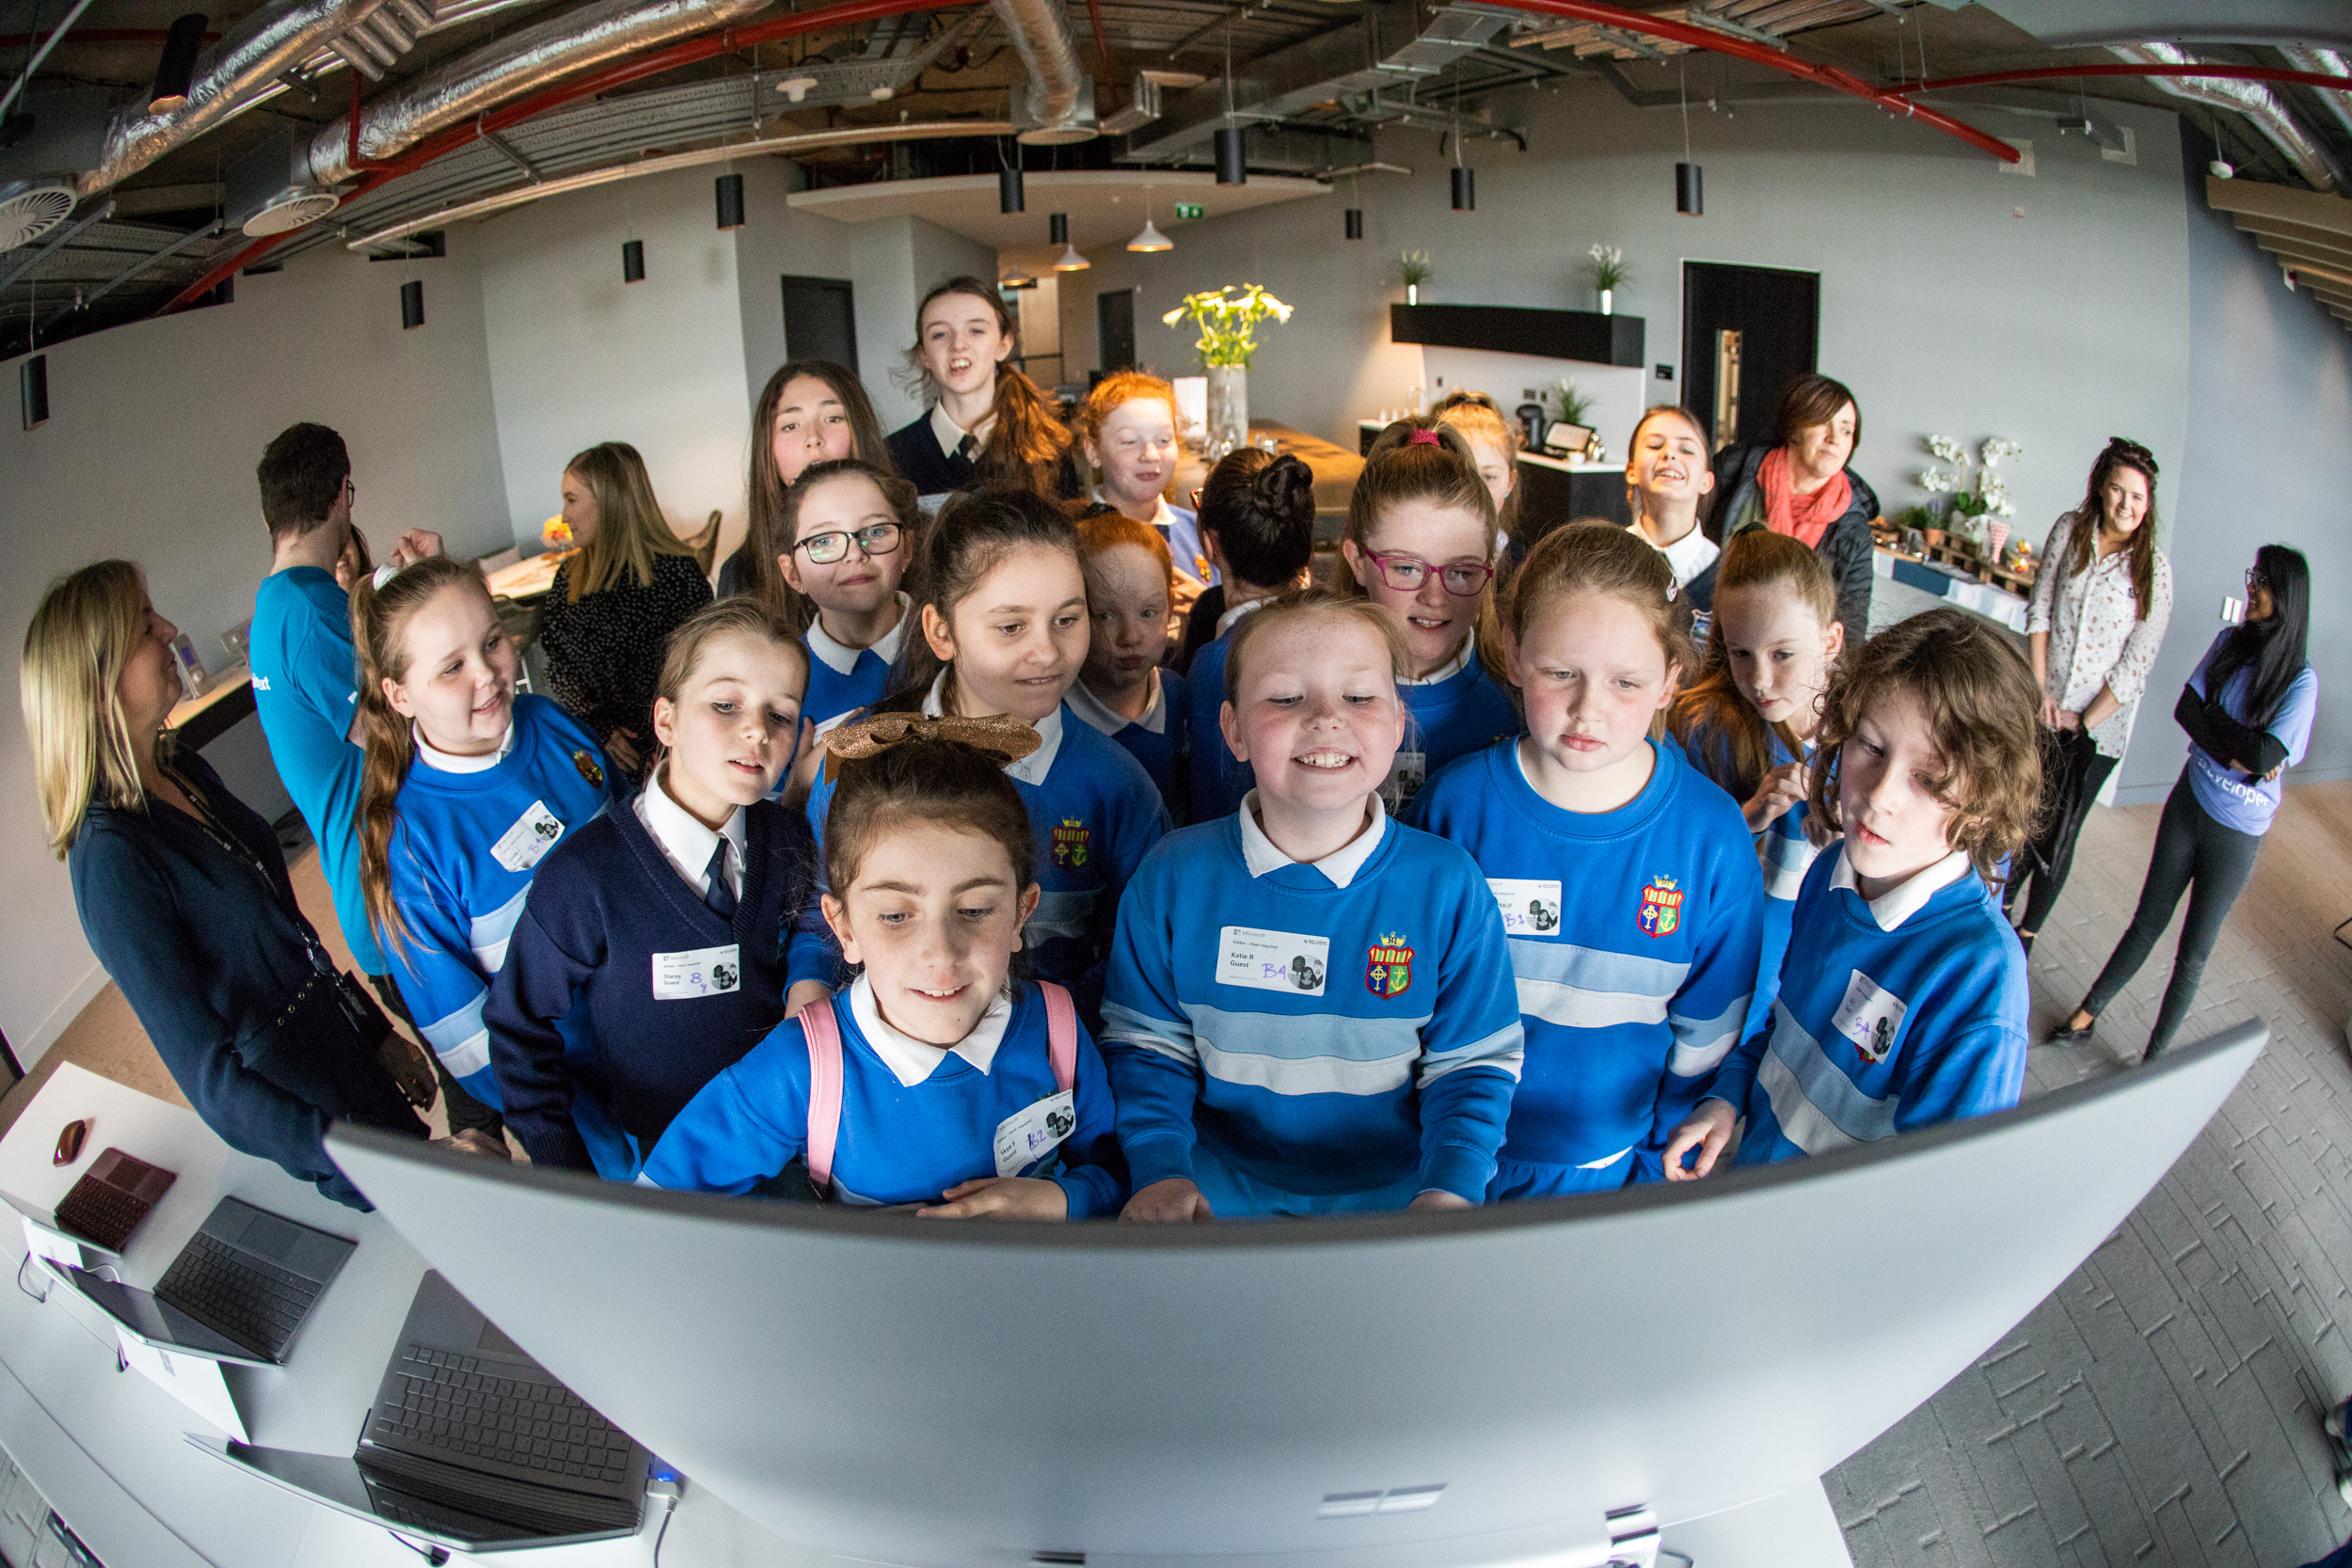 Microsoft celebrates Girls in ICT Day with special DreamSpace event to inspire young girls